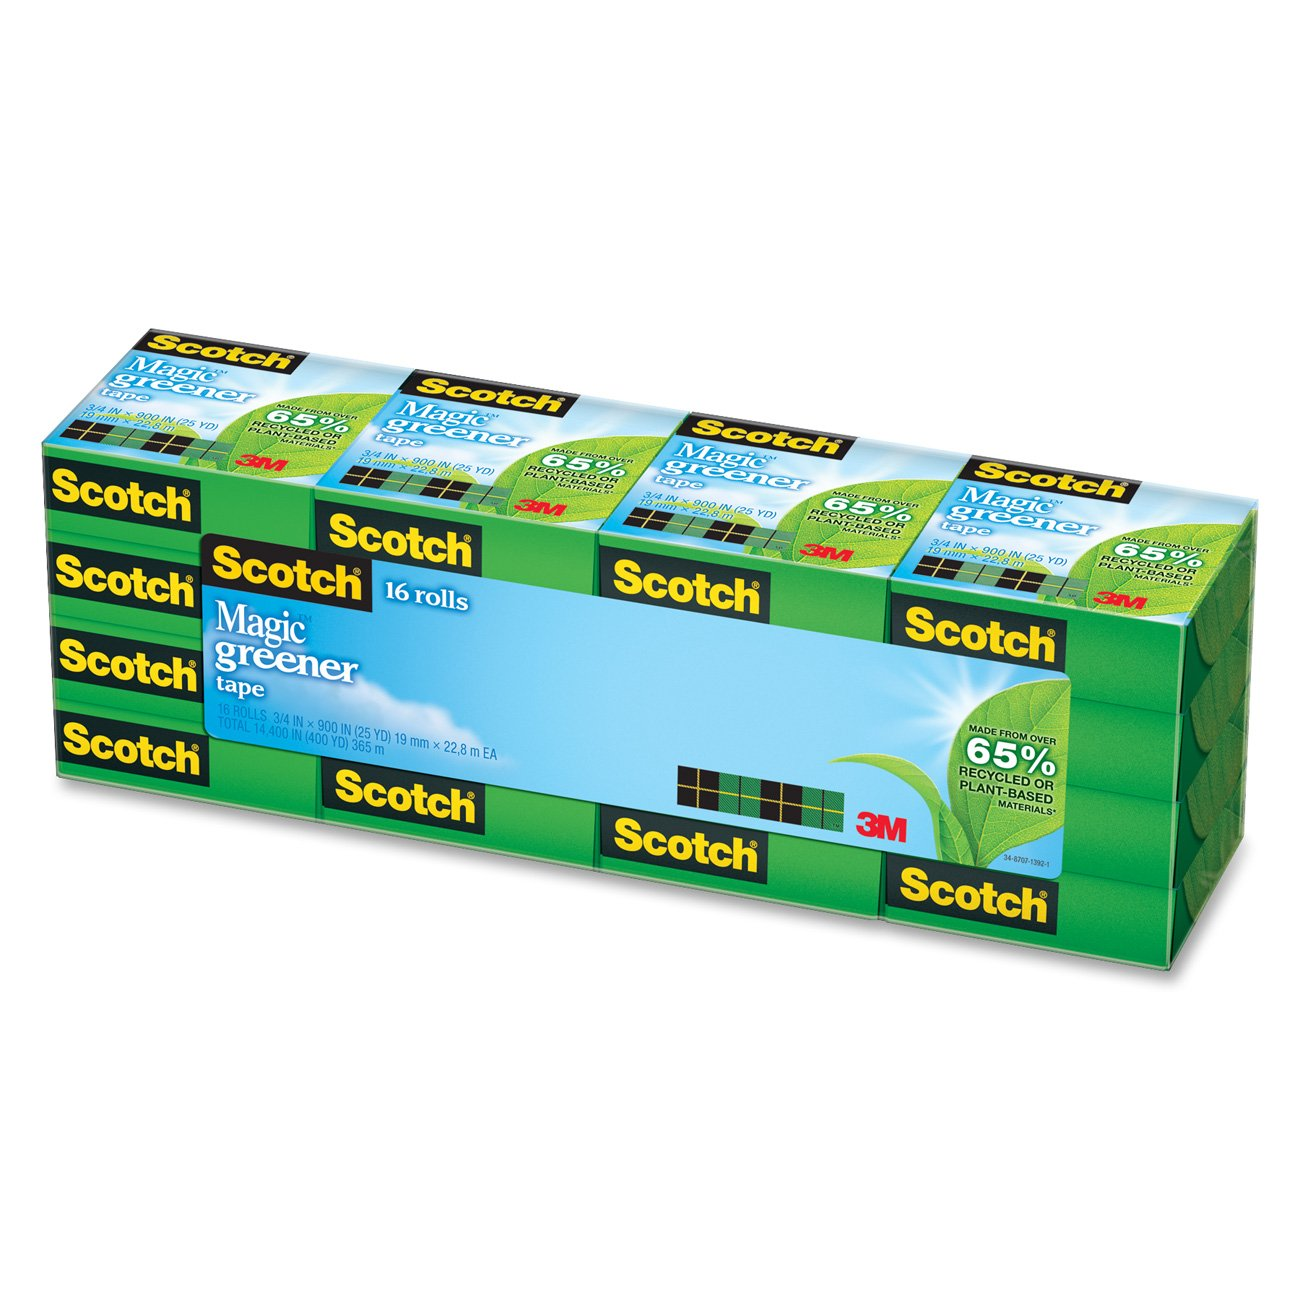 Scotch Magic Greener Tape, Standard Width, Engineered for Mending, 3/4 x 900 Inches, Boxed, 16 Rolls (812-16P) by Scotch Brand